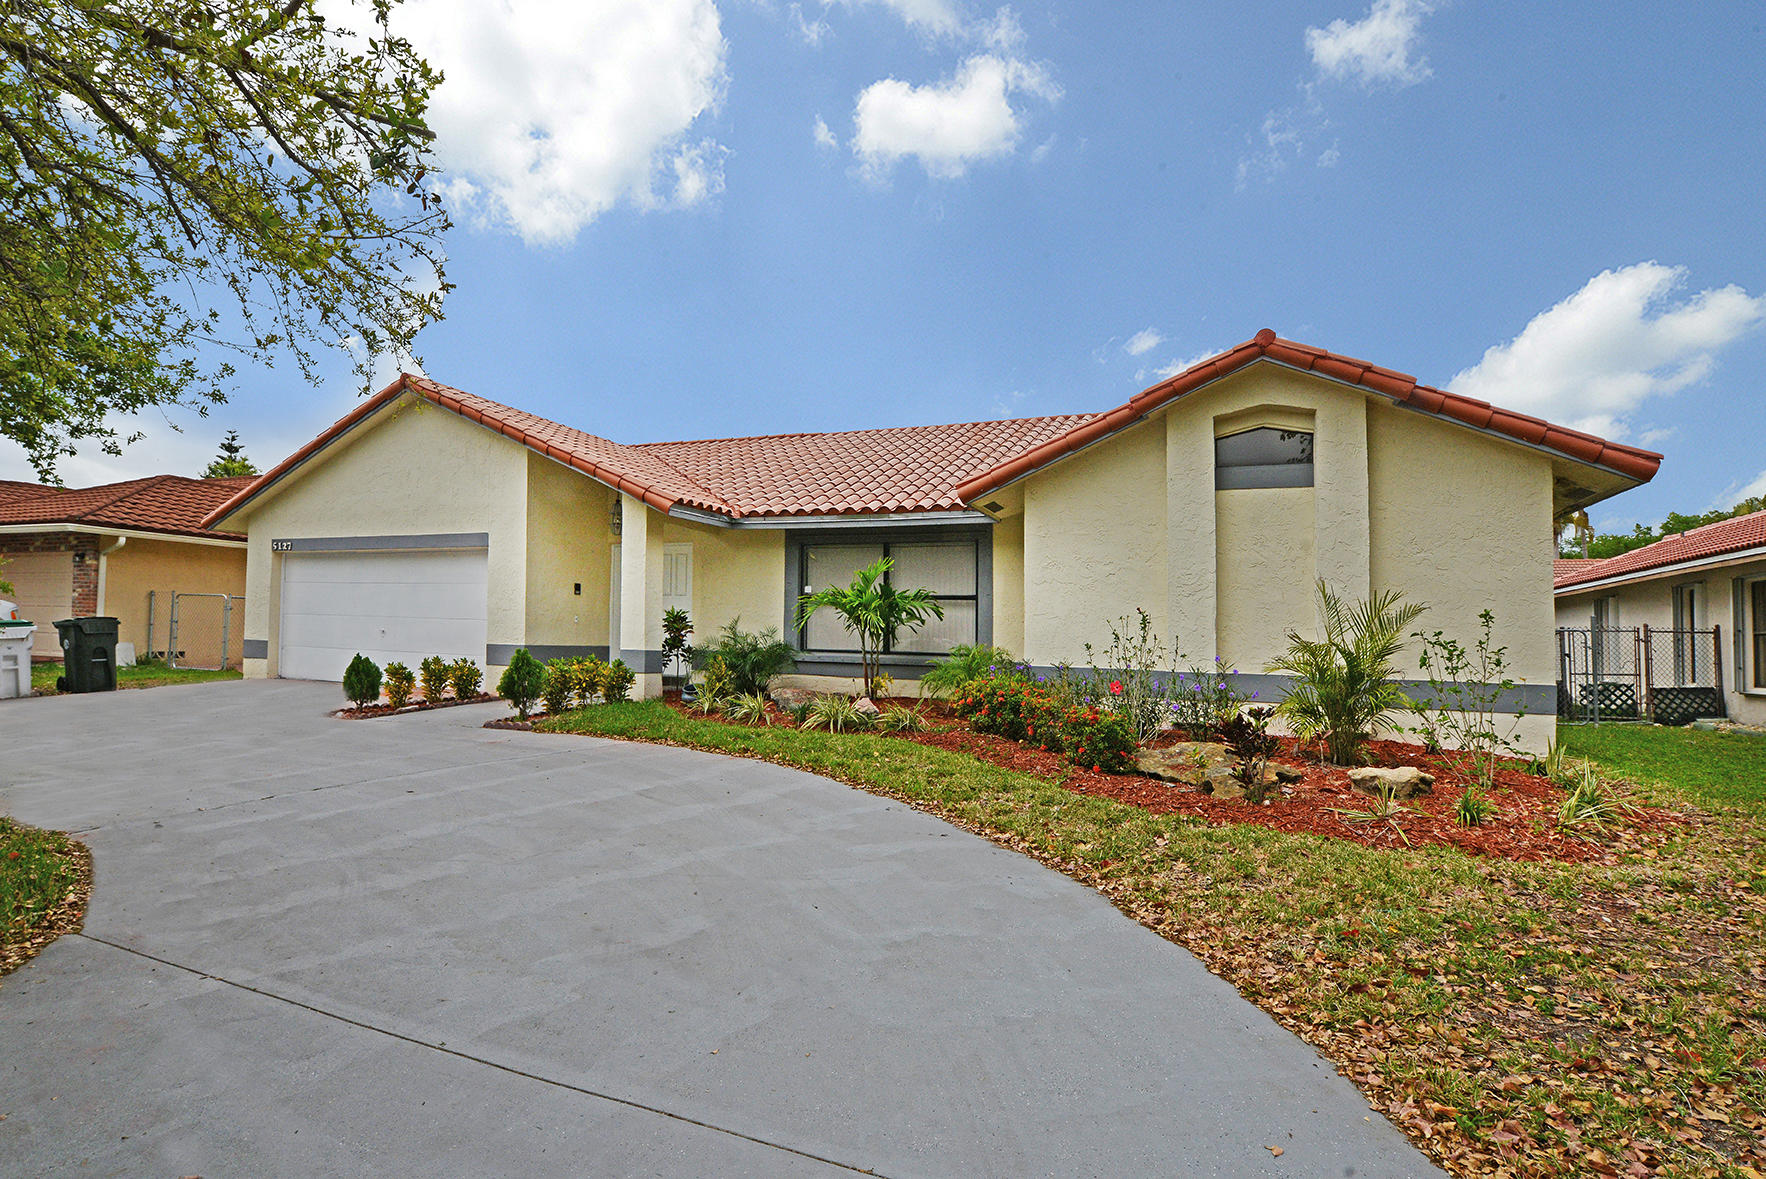 5127 NW 48th Avenue - Coconut Creek, Florida